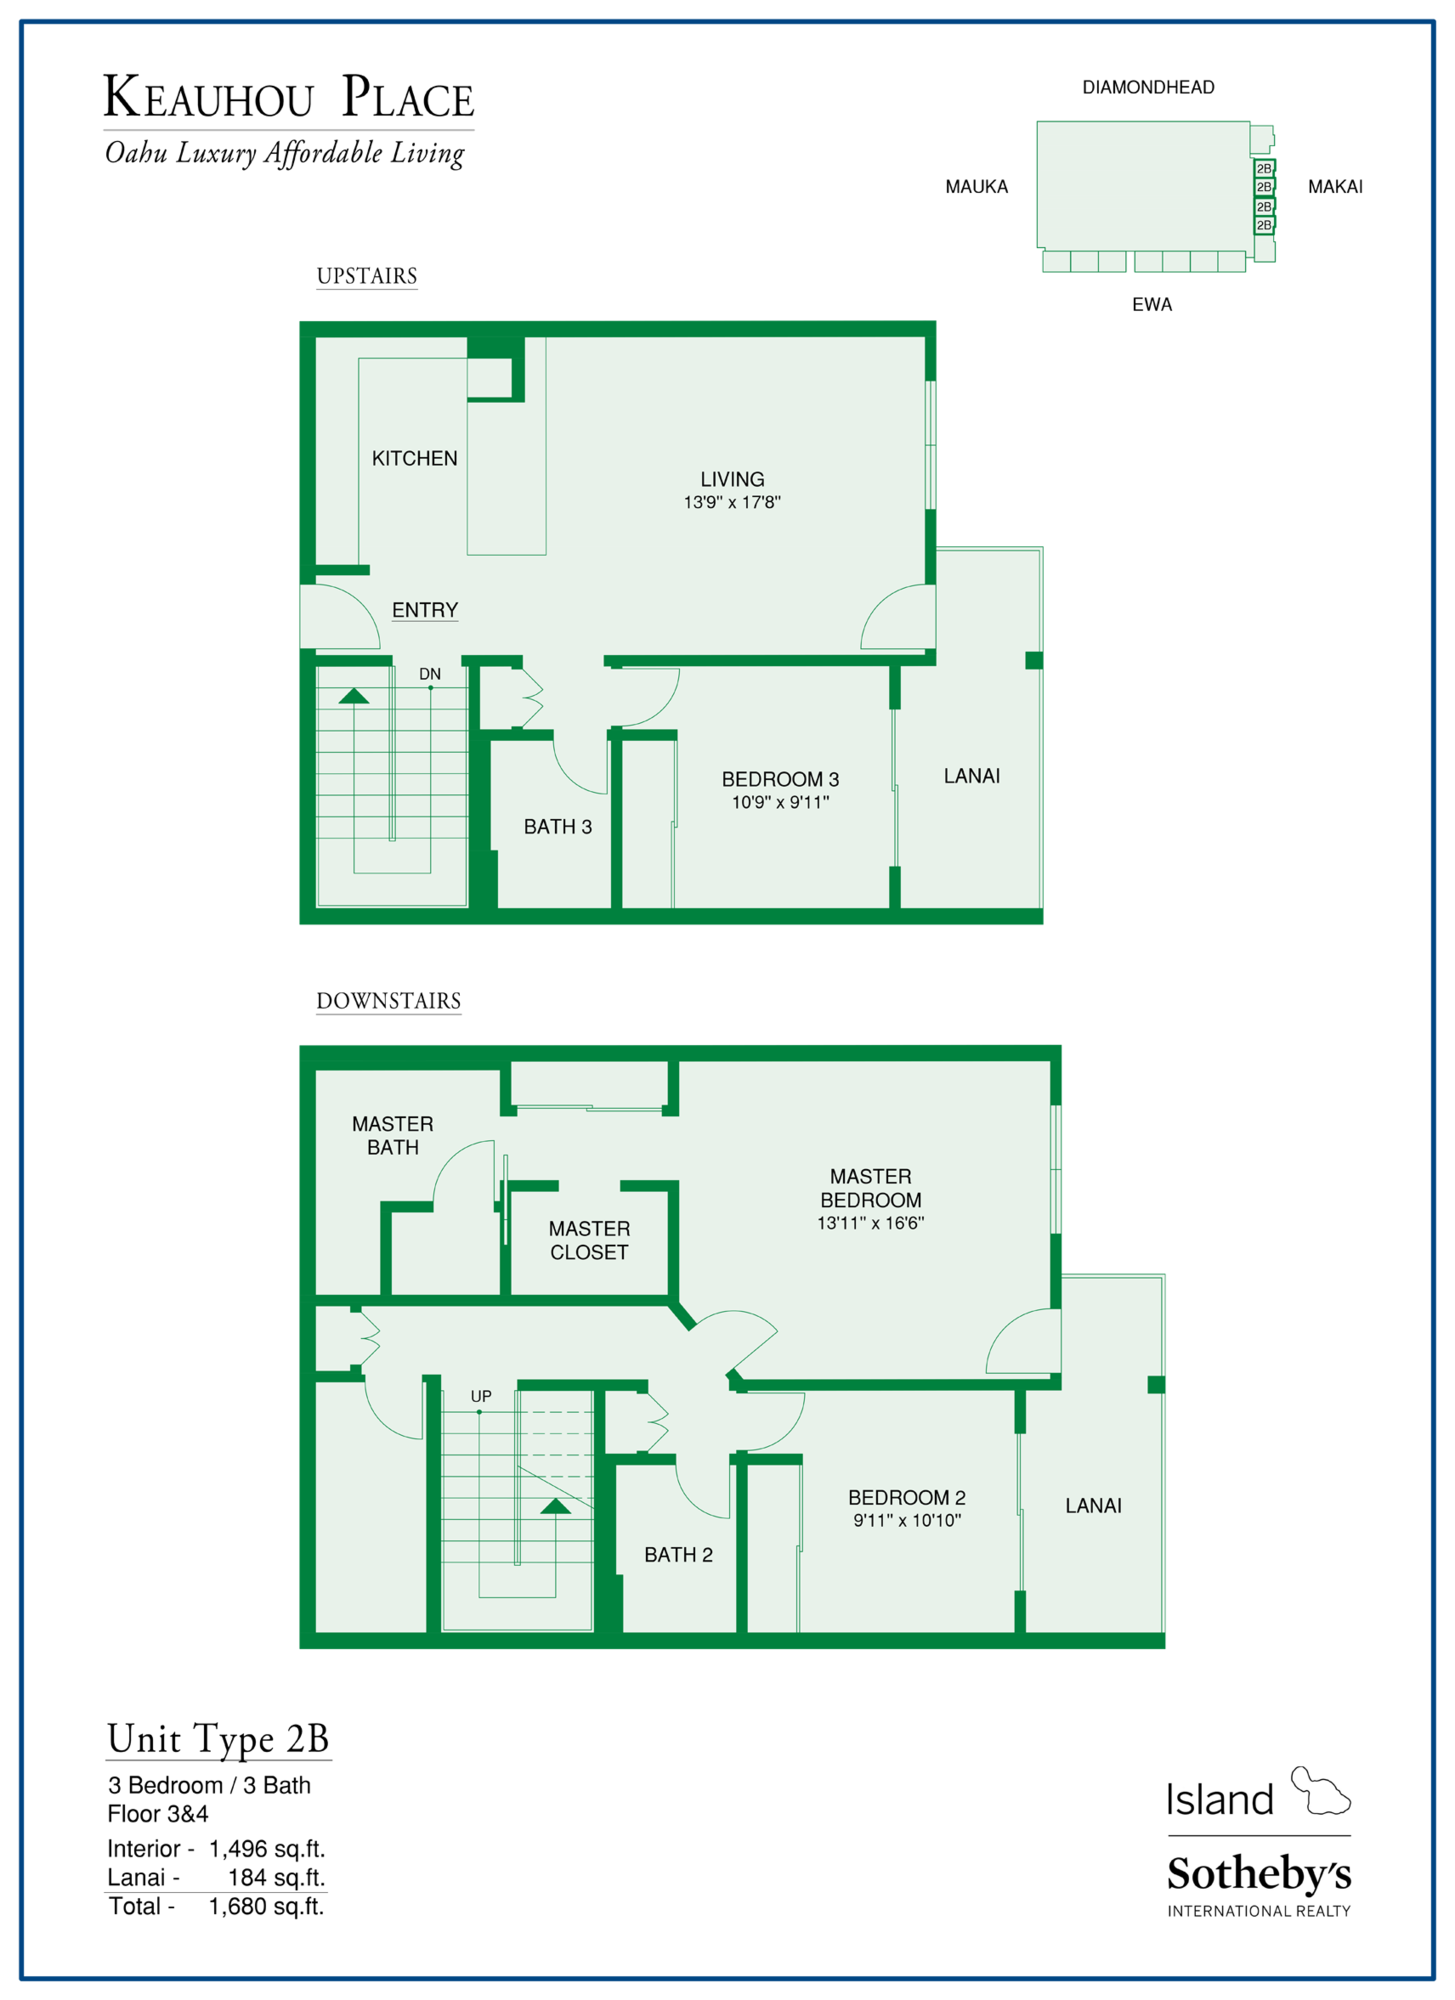 keauhou place floorplan honolulu